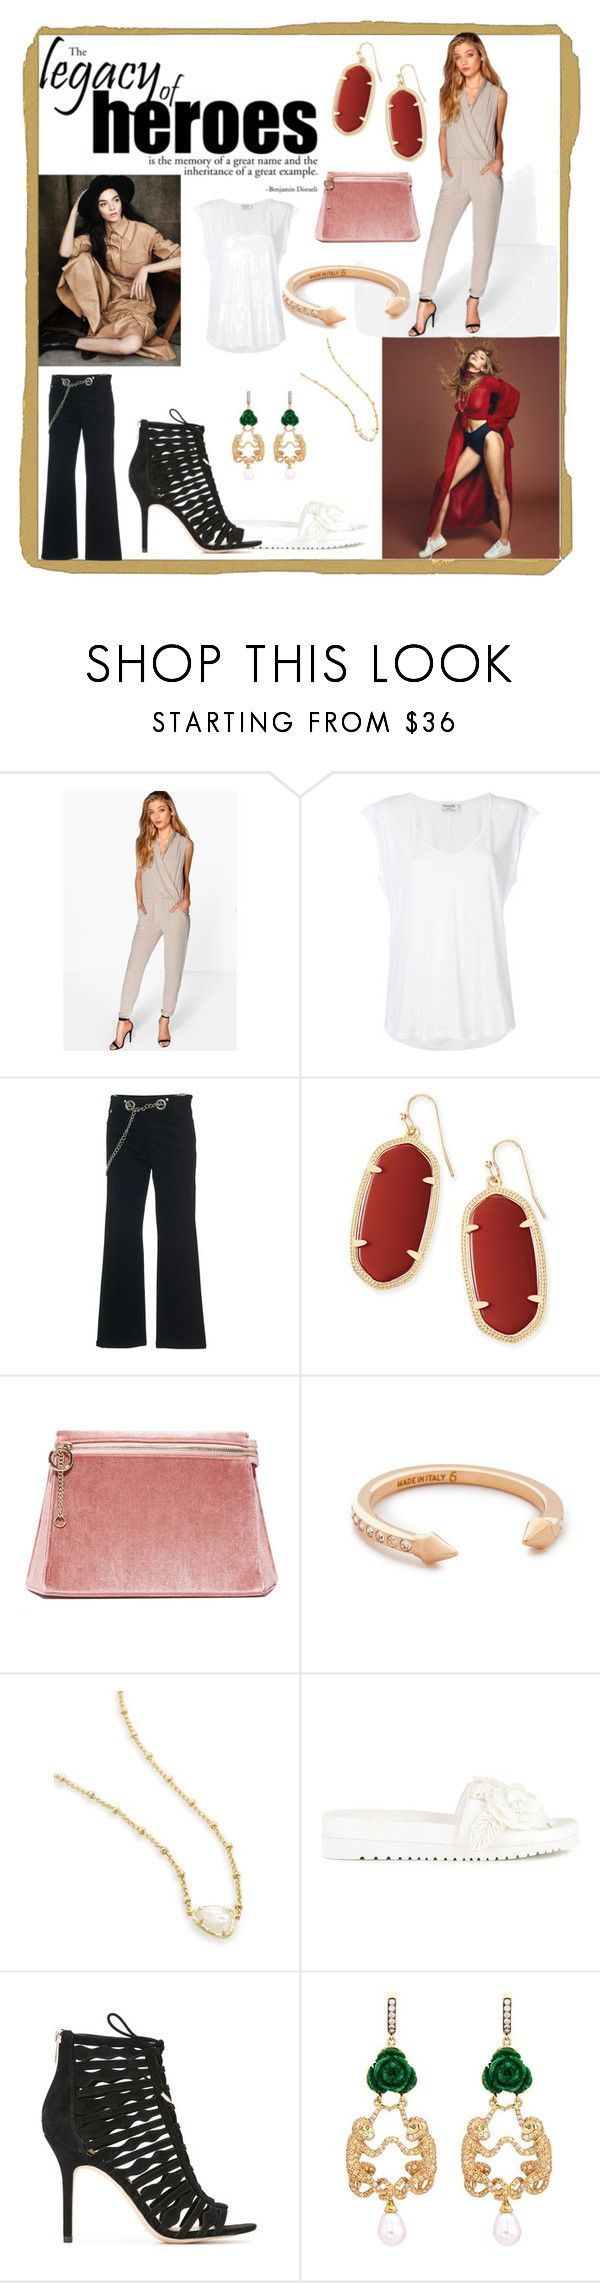 """""""Feeling Fashion"""" by denisee-denisee ❤ liked on Polyvore featuring Boohoo, Frame, Miaou, Kendra Scott, Cafuné, Vita Fede, Senso, Sam Edelman and Wendy Yue"""